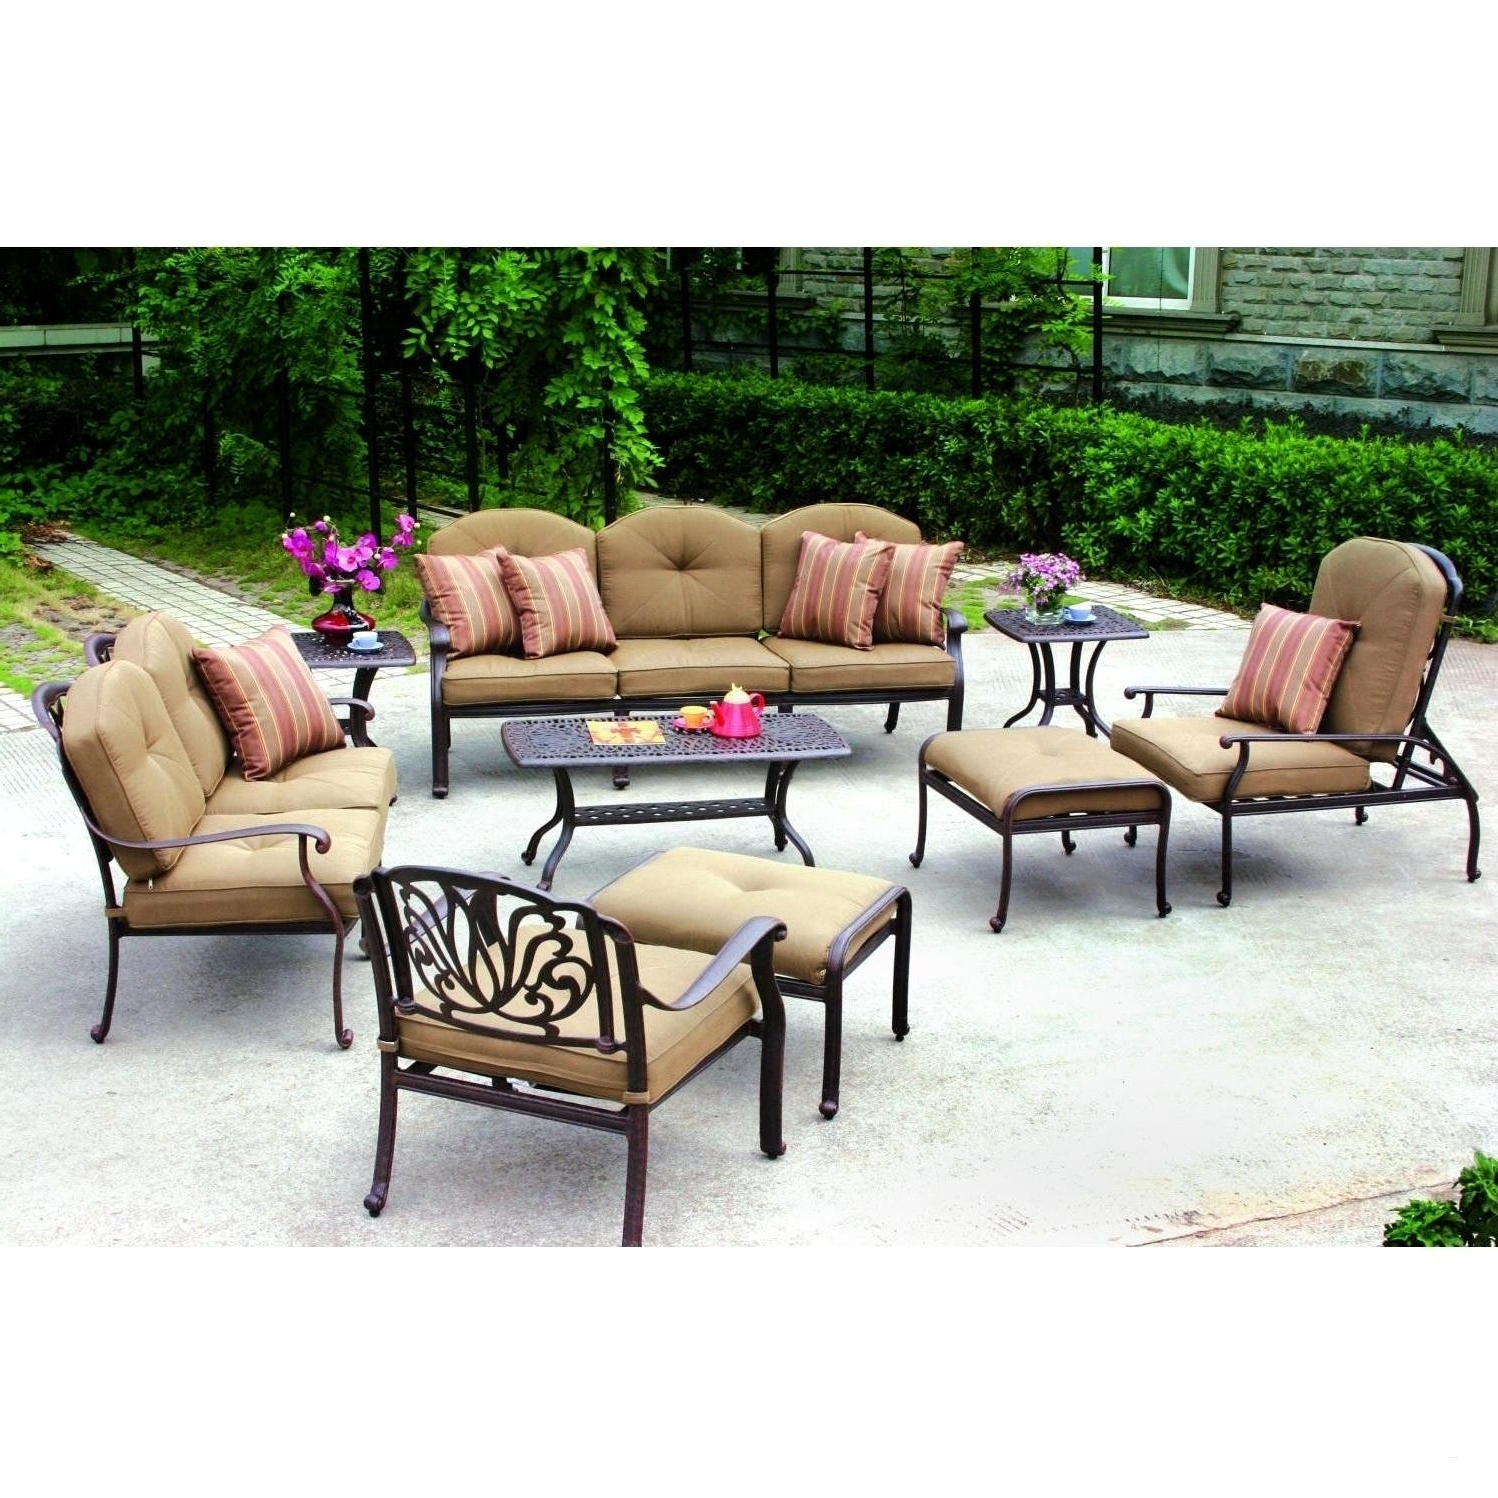 Outdoor Fire Pit Seating Conversation Chairs 3 Piece Patio Set In Trendy Target Patio Furniture Conversation Sets (View 8 of 20)